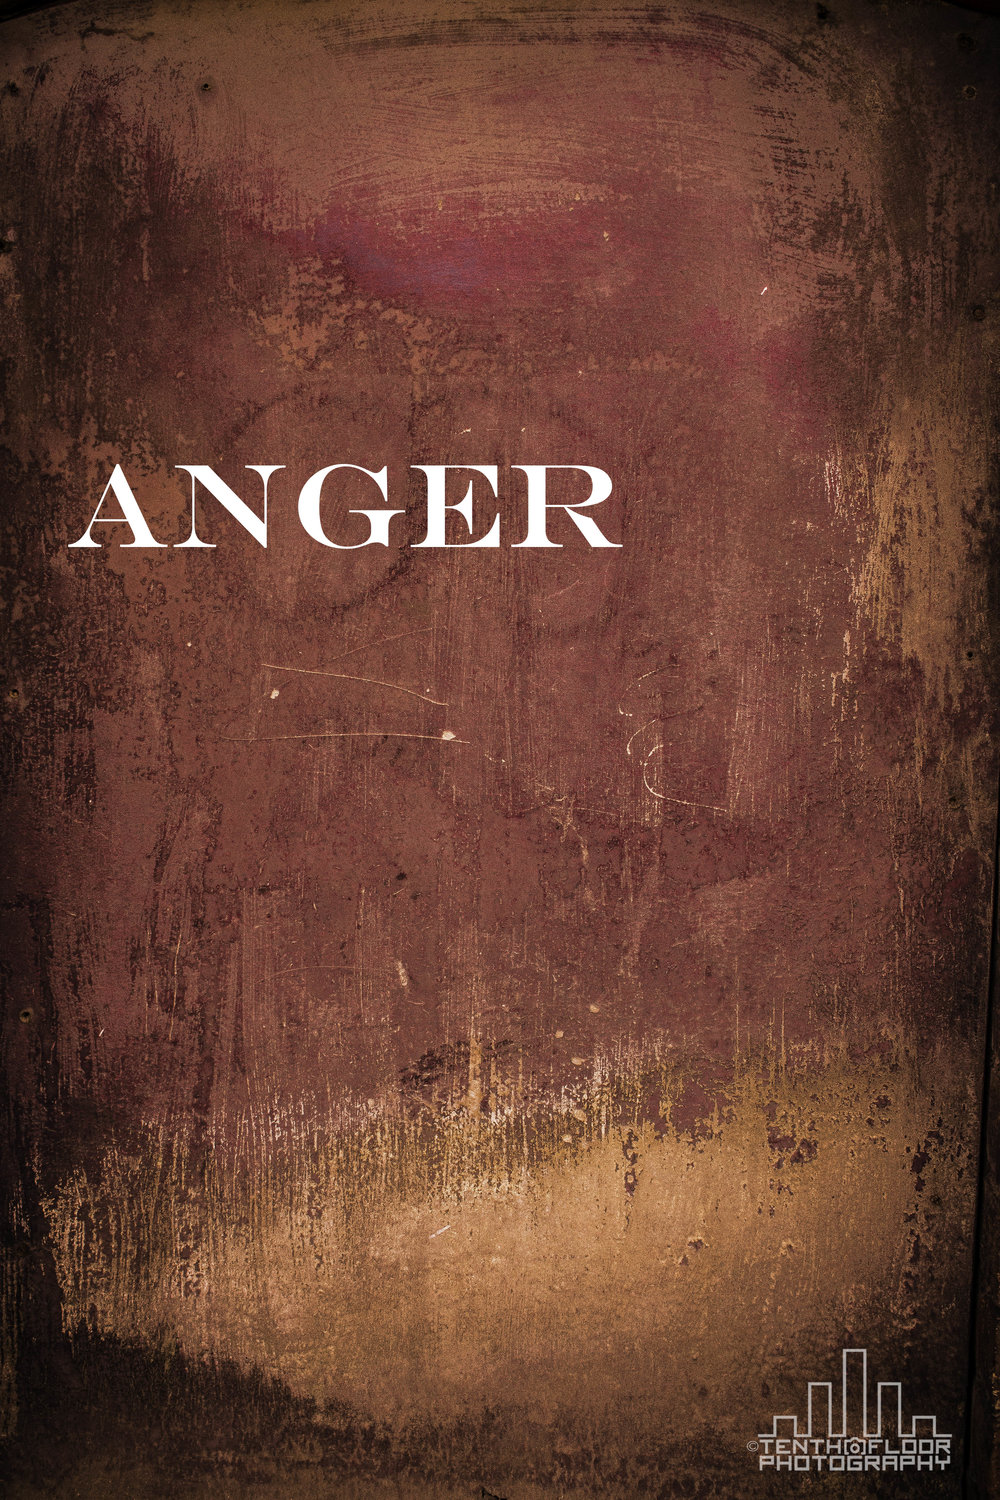 Anger will be released at 17.00 on 23/03/2018